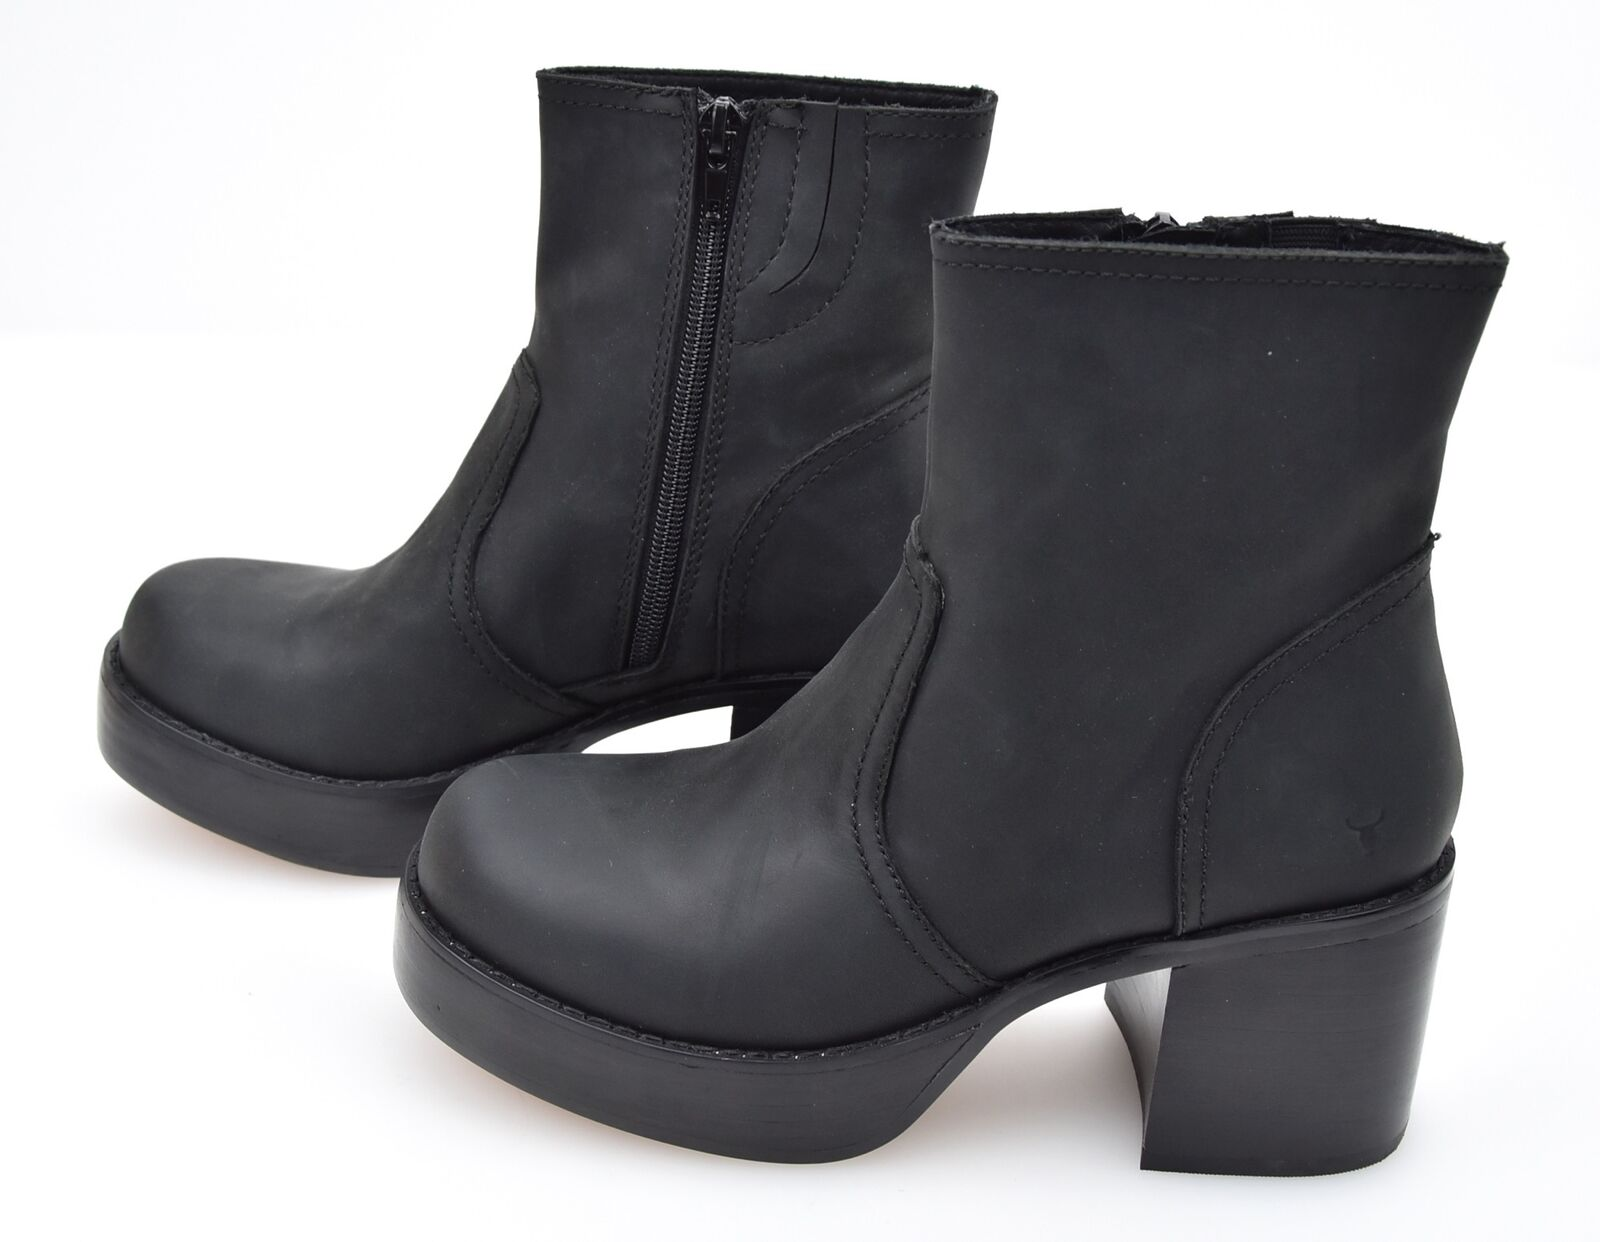 WINDSORSMITH WOMAN ANKLE BOOTS BOOTIES WINTER LEATHER LEATHER LEATHER BLOCK HEELS CODE ELIZA 7b78ba